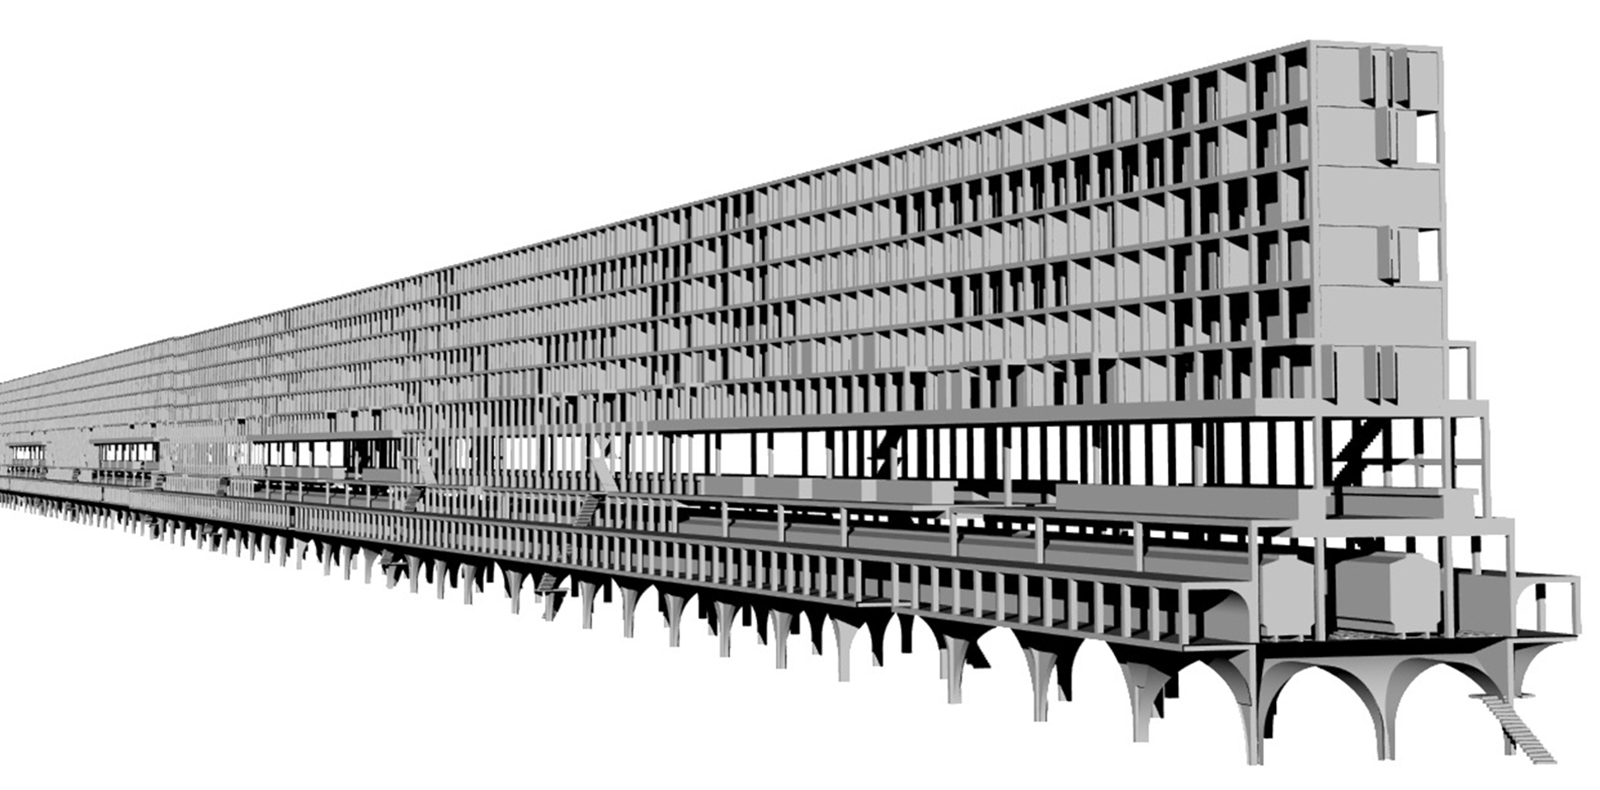 In progress massing study of the inserted infill ININ massing along the dense Harlem neighborhoods with elevated rail